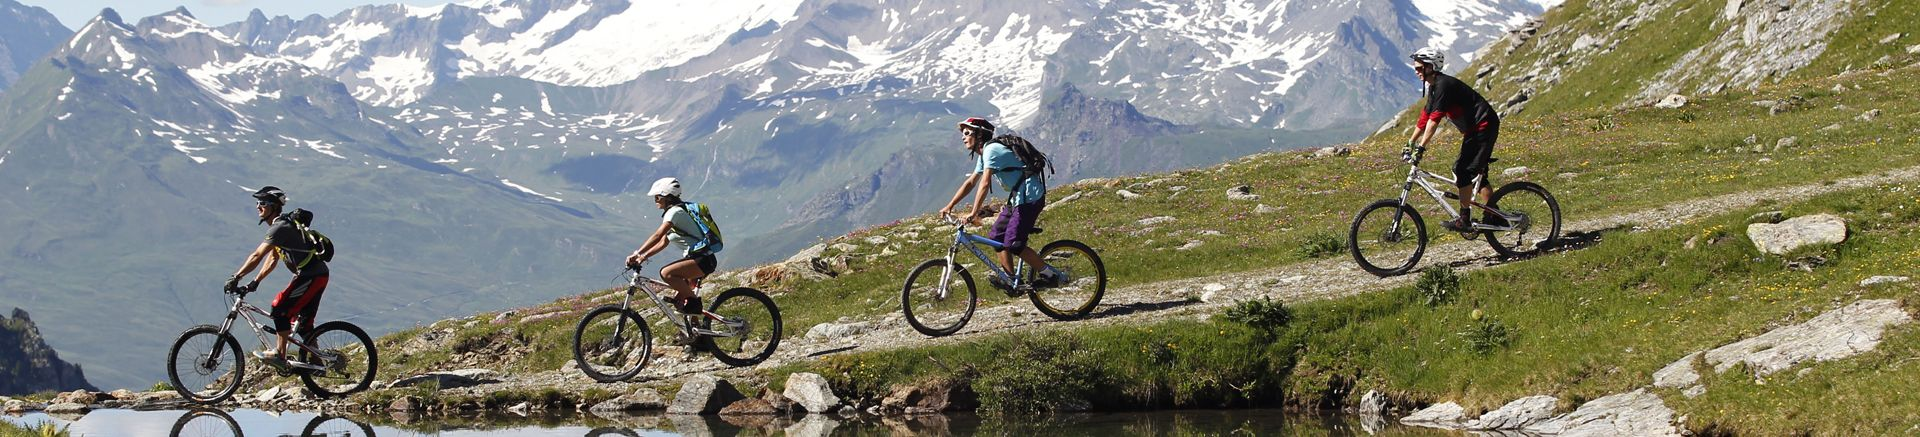 Summer activities in La Plagne Montalbert